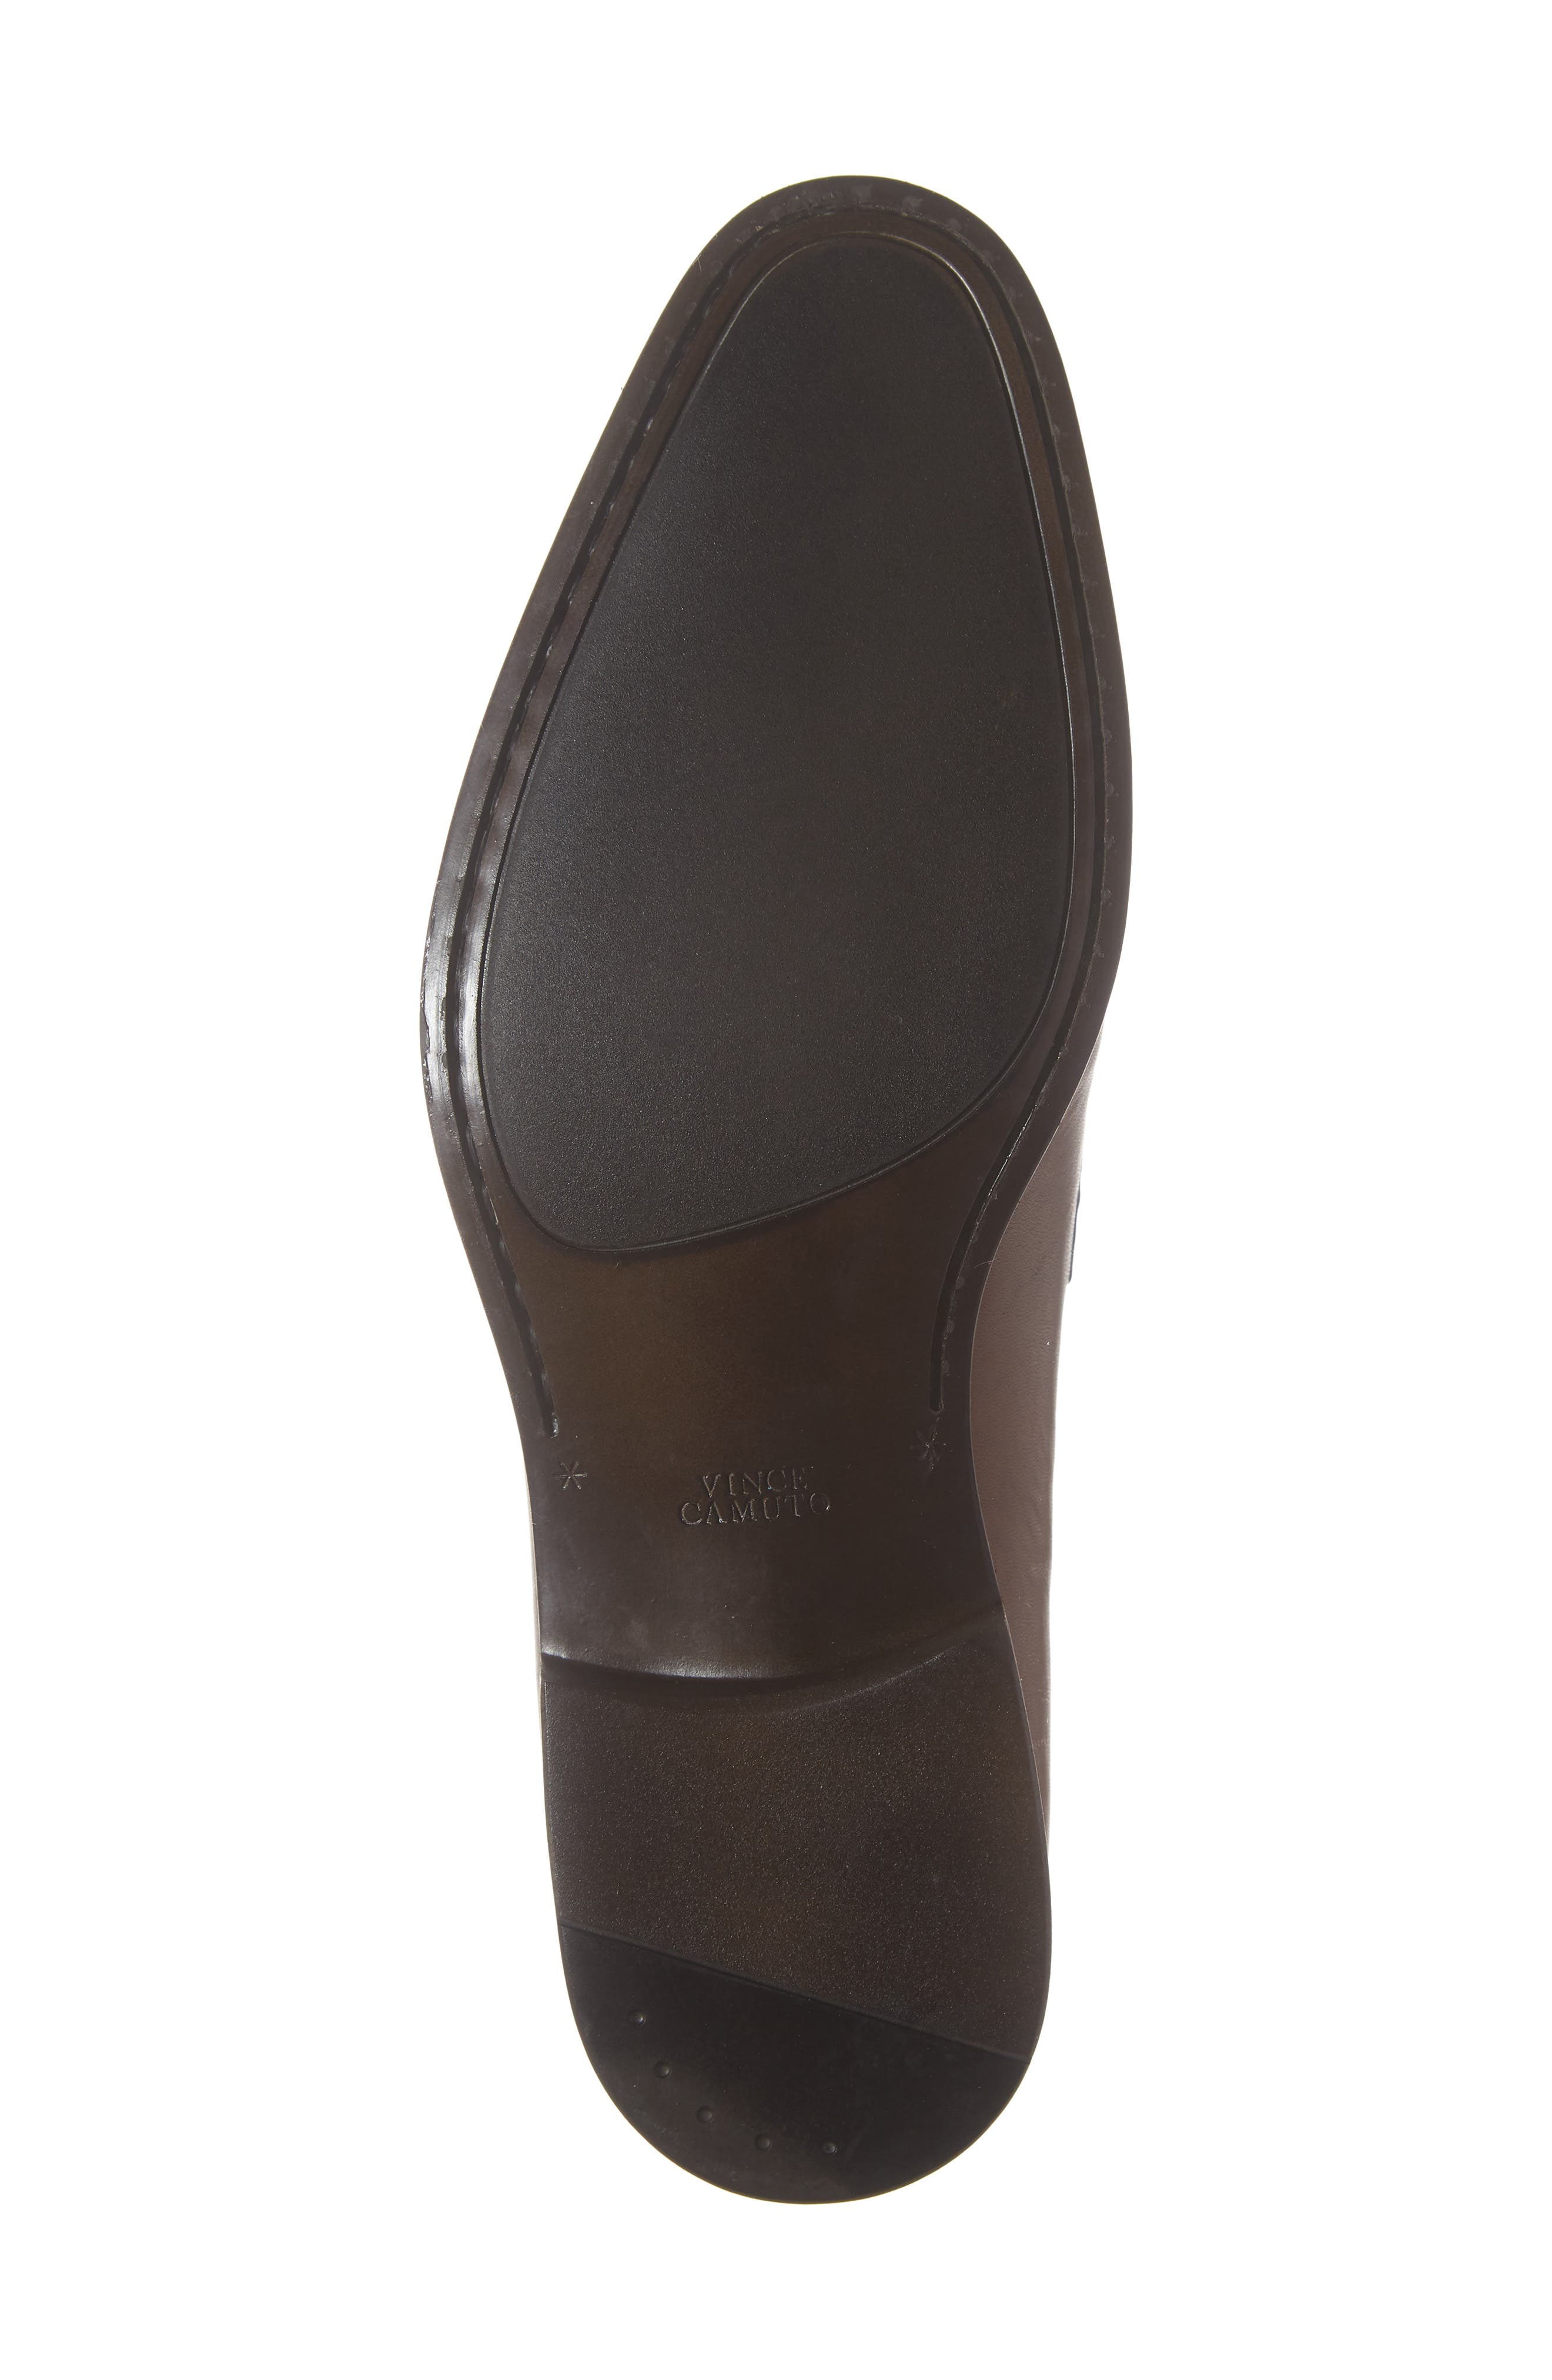 Iggi Penny Loafer,                             Alternate thumbnail 6, color,                             COGNAC LEATHER